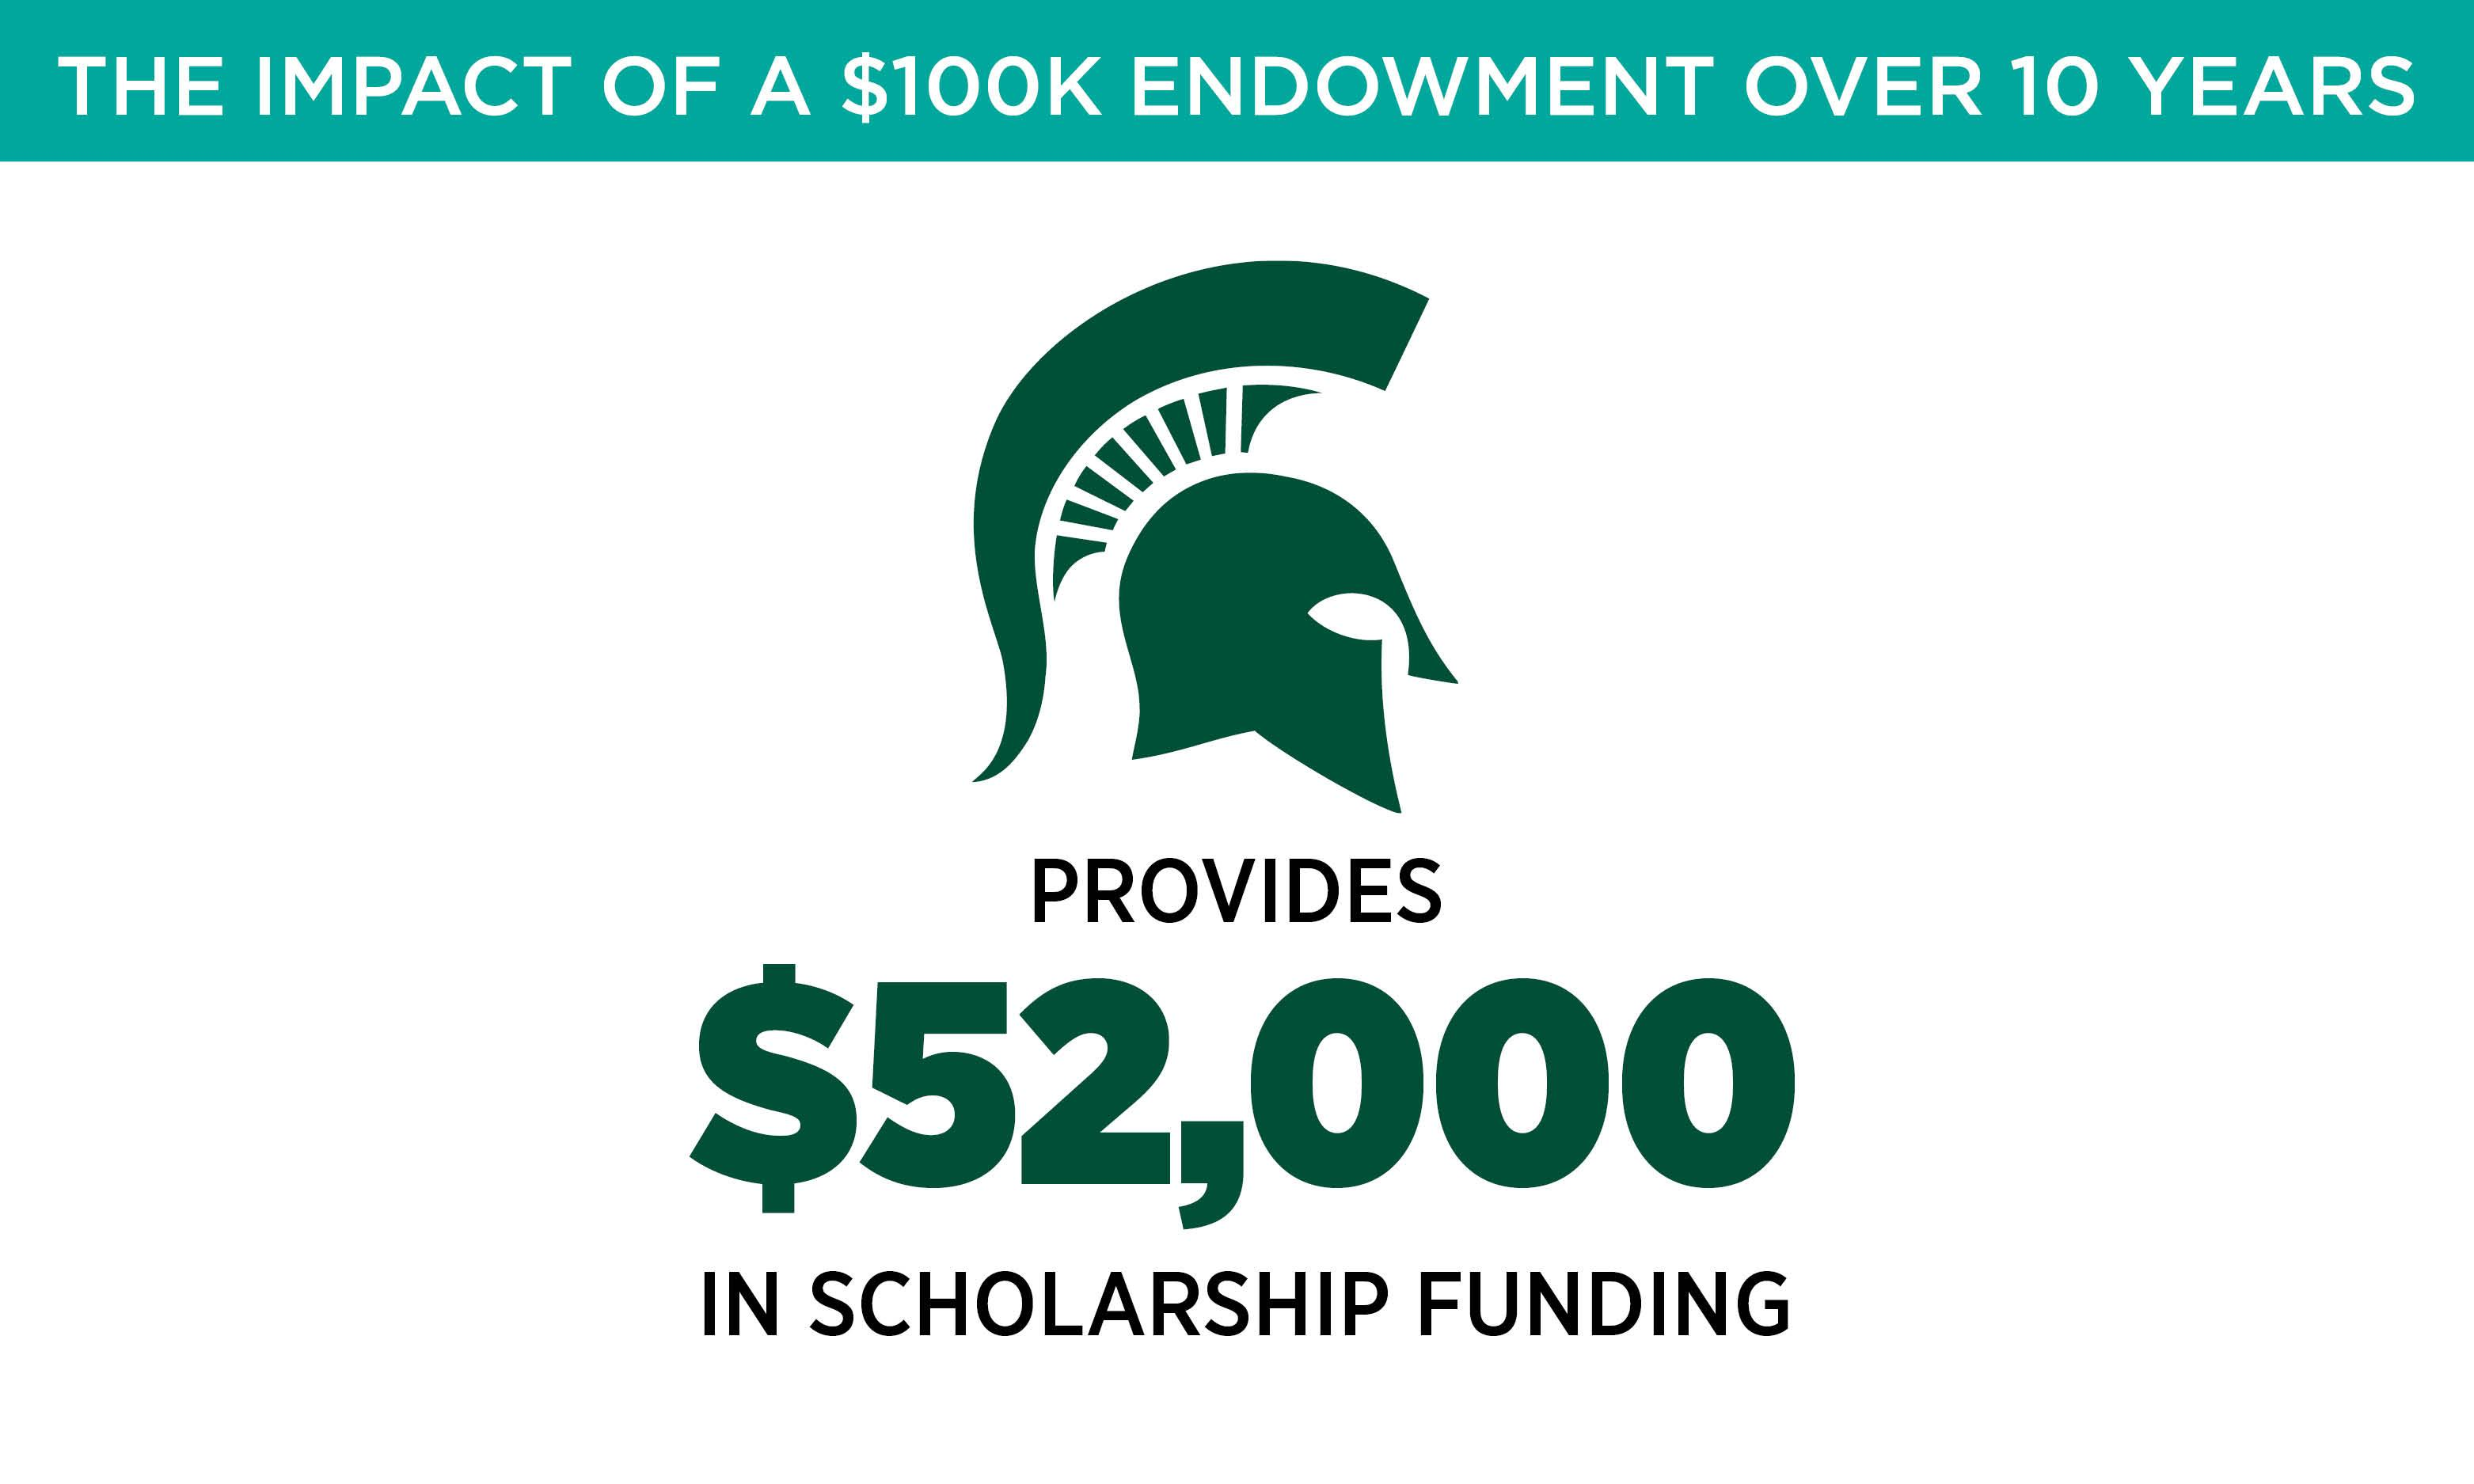 Provides $52,000 in scholarship funding